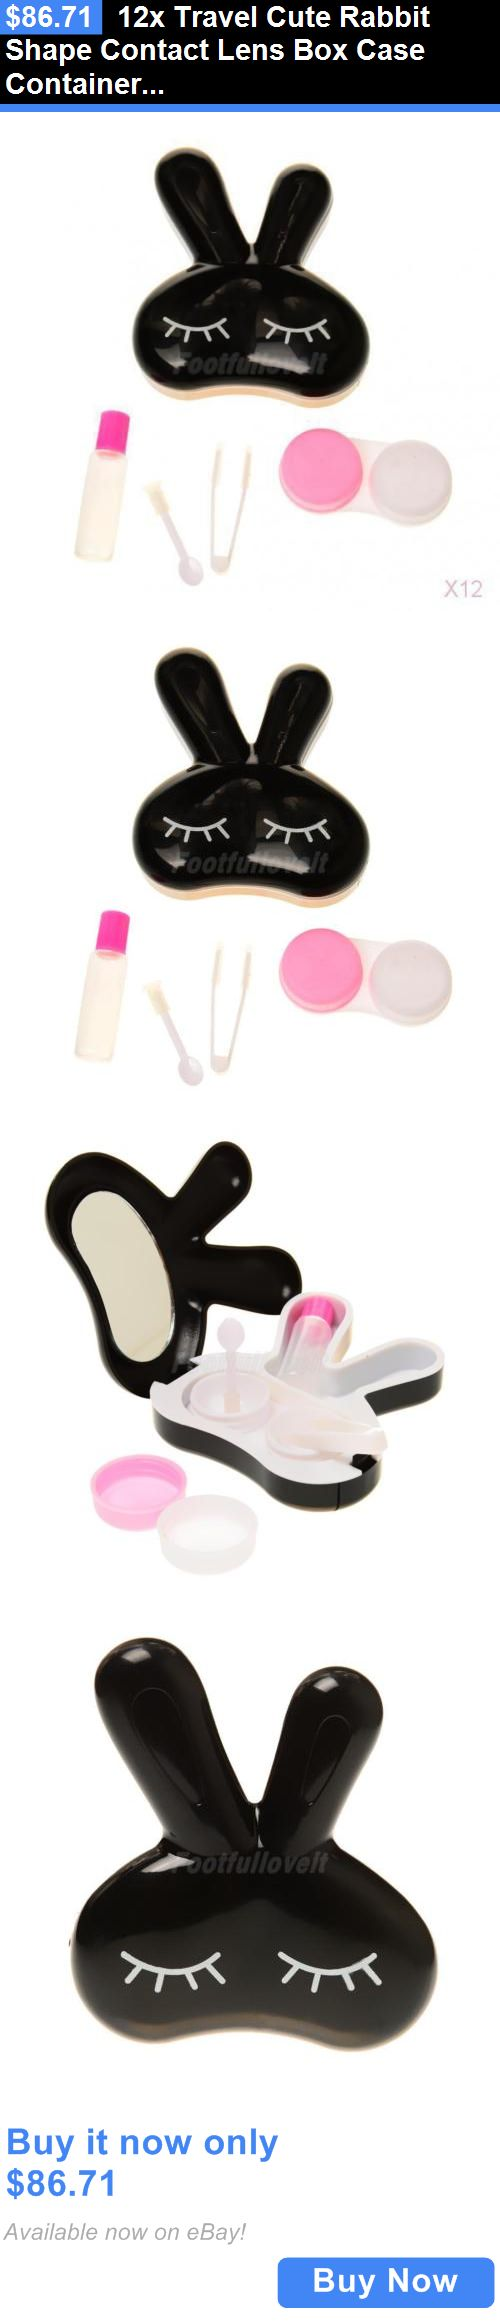 Contact Lens Cases: 12X Travel Cute Rabbit Shape Contact Lens Box Case Container Holder Soak Storage BUY IT NOW ONLY: $86.71